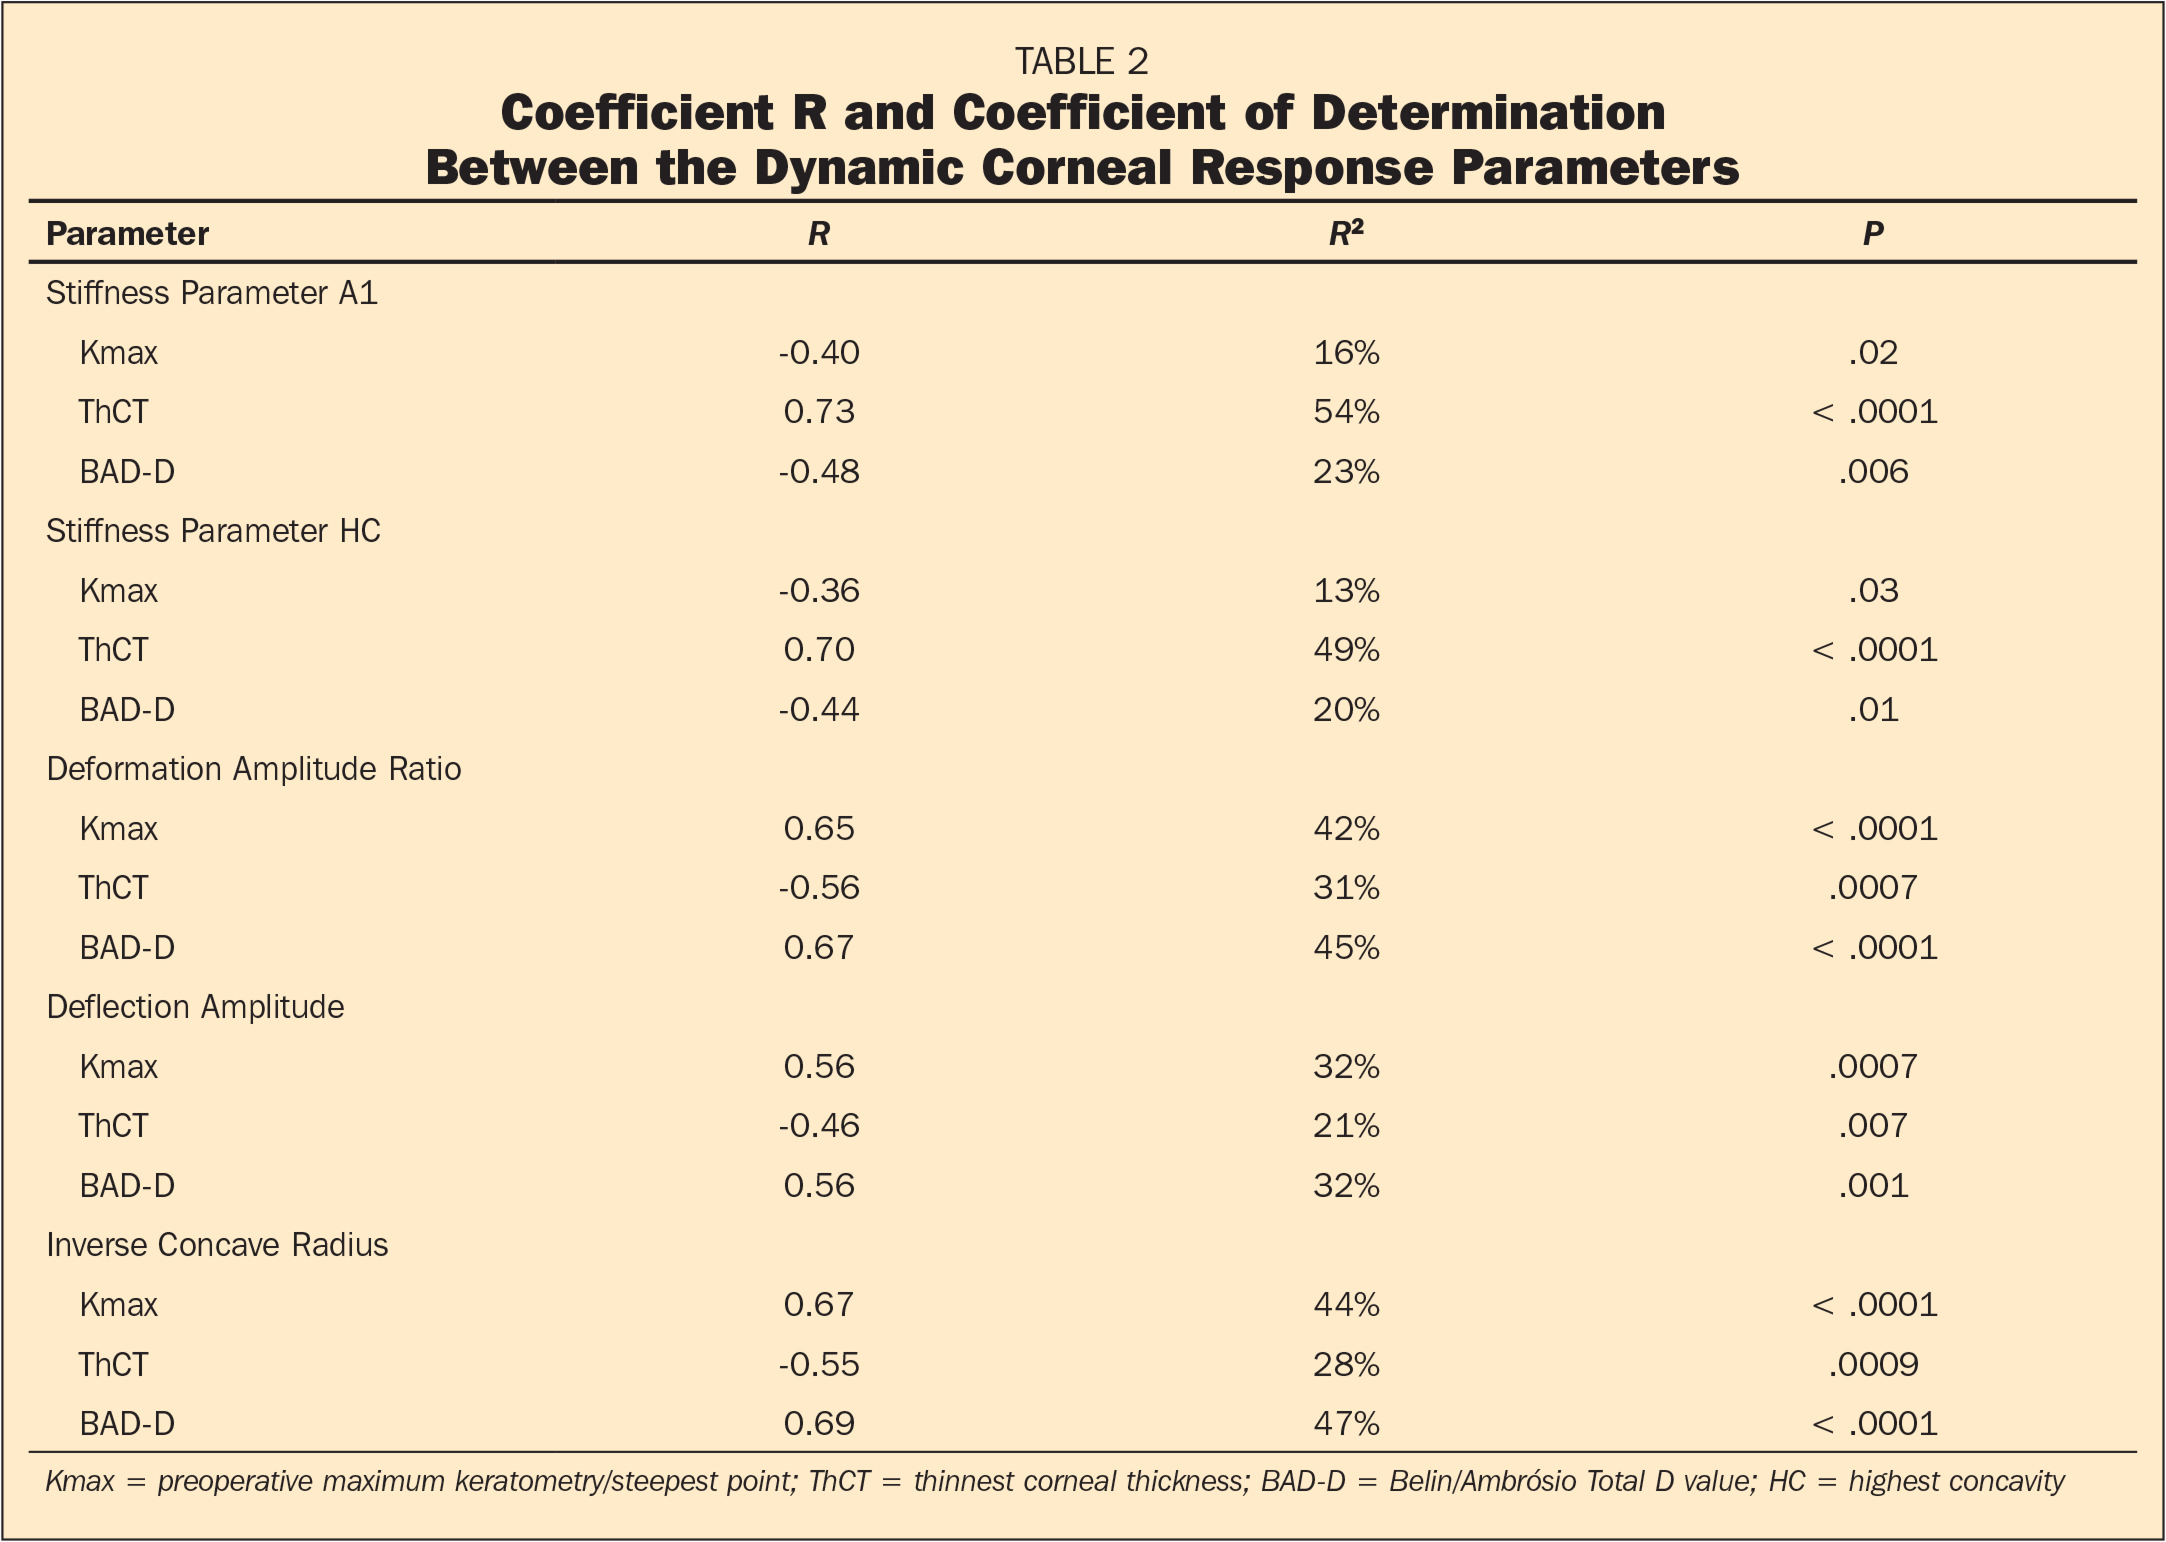 Coefficient R and Coefficient of Determination Between the Dynamic Corneal Response Parameters